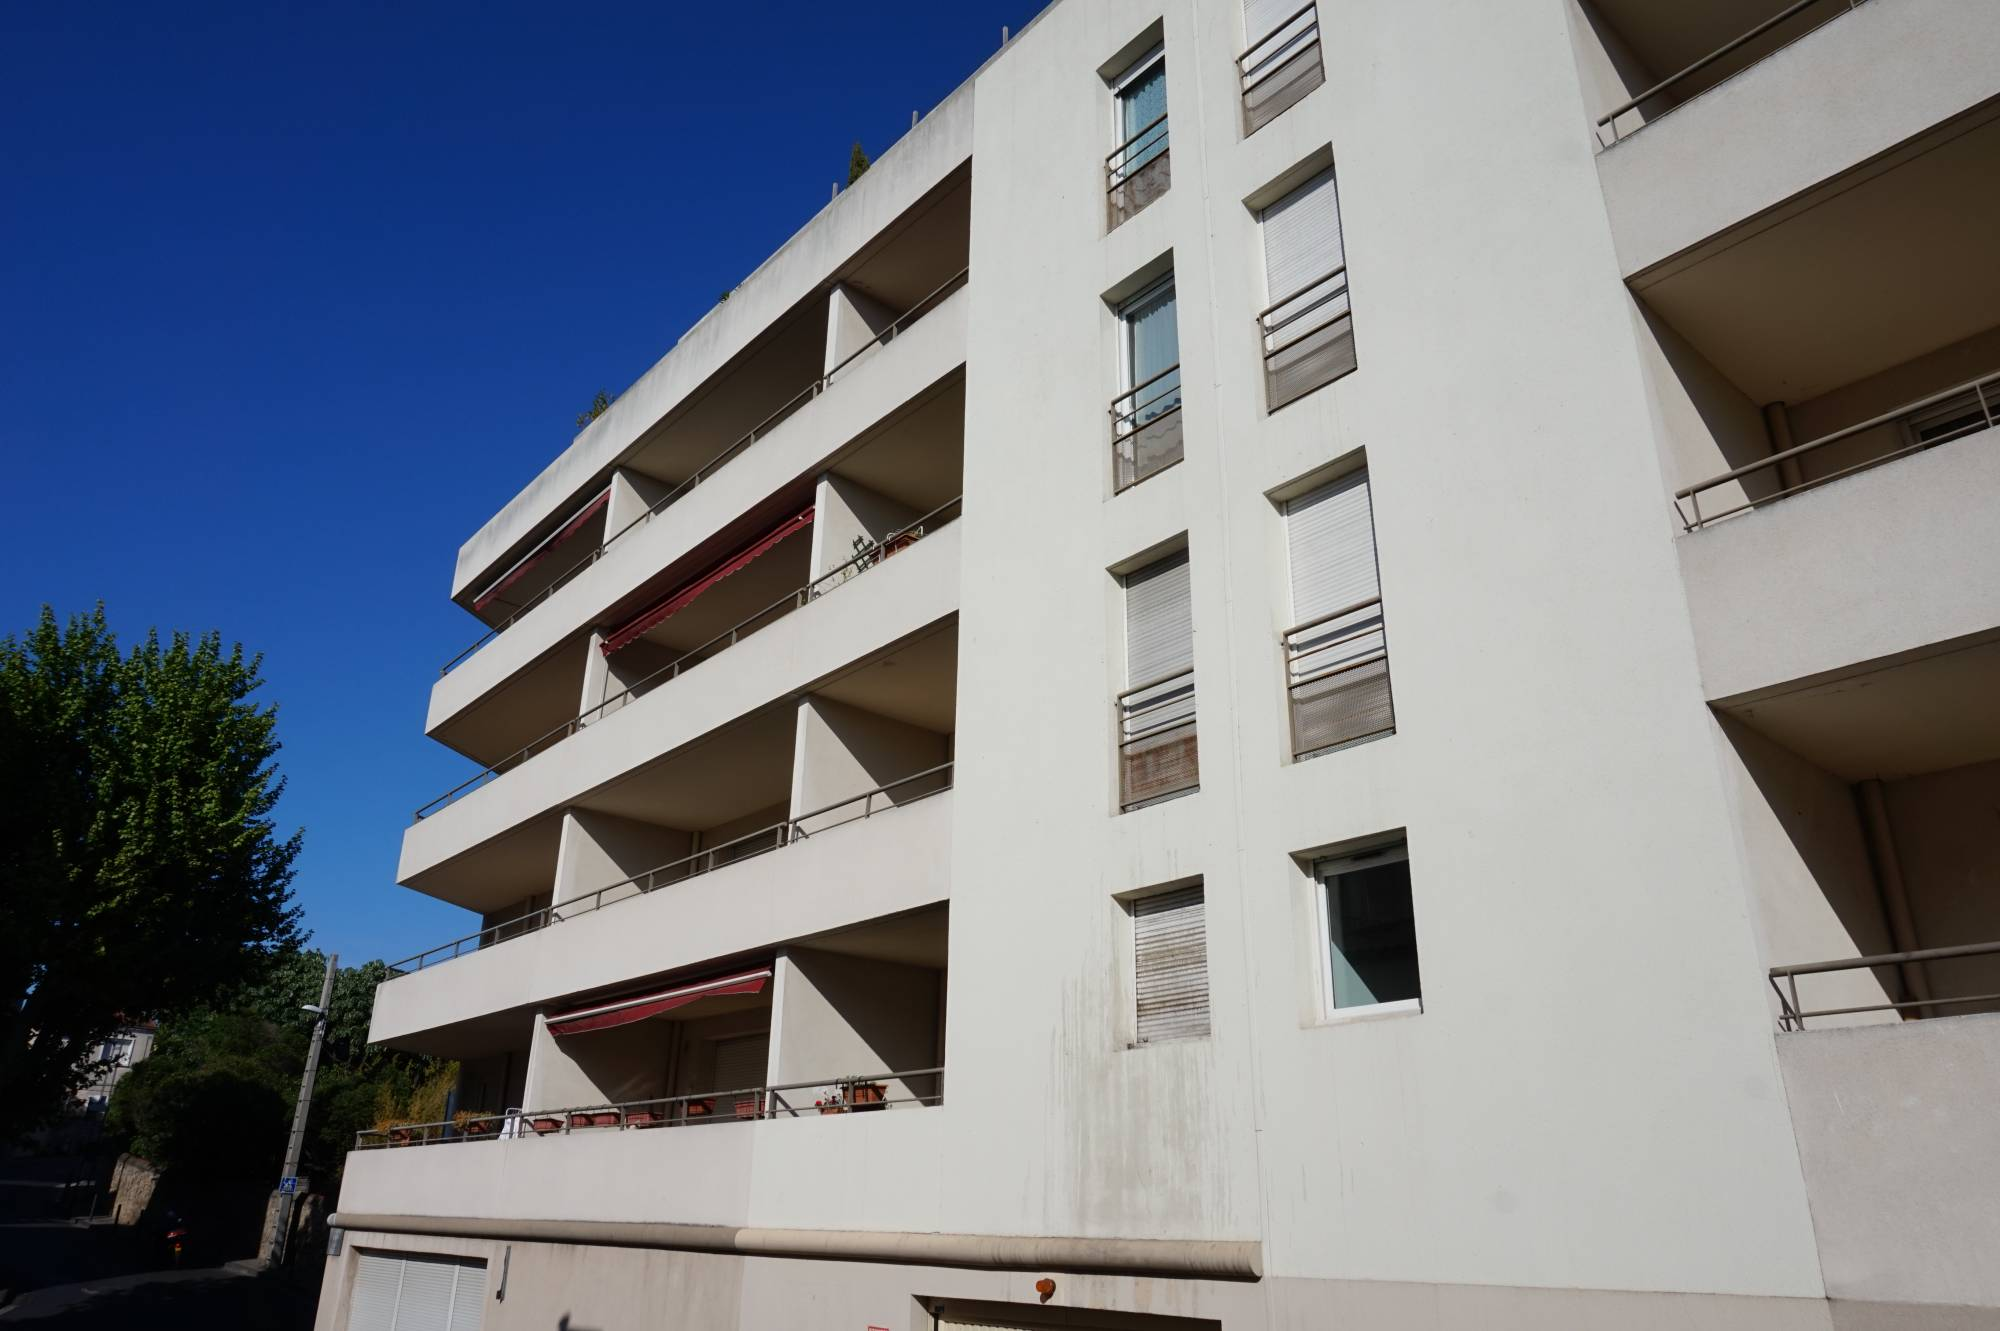 Appartement louer 3 pi ces marseille 04 agence for Agence immobiliere appartement a louer